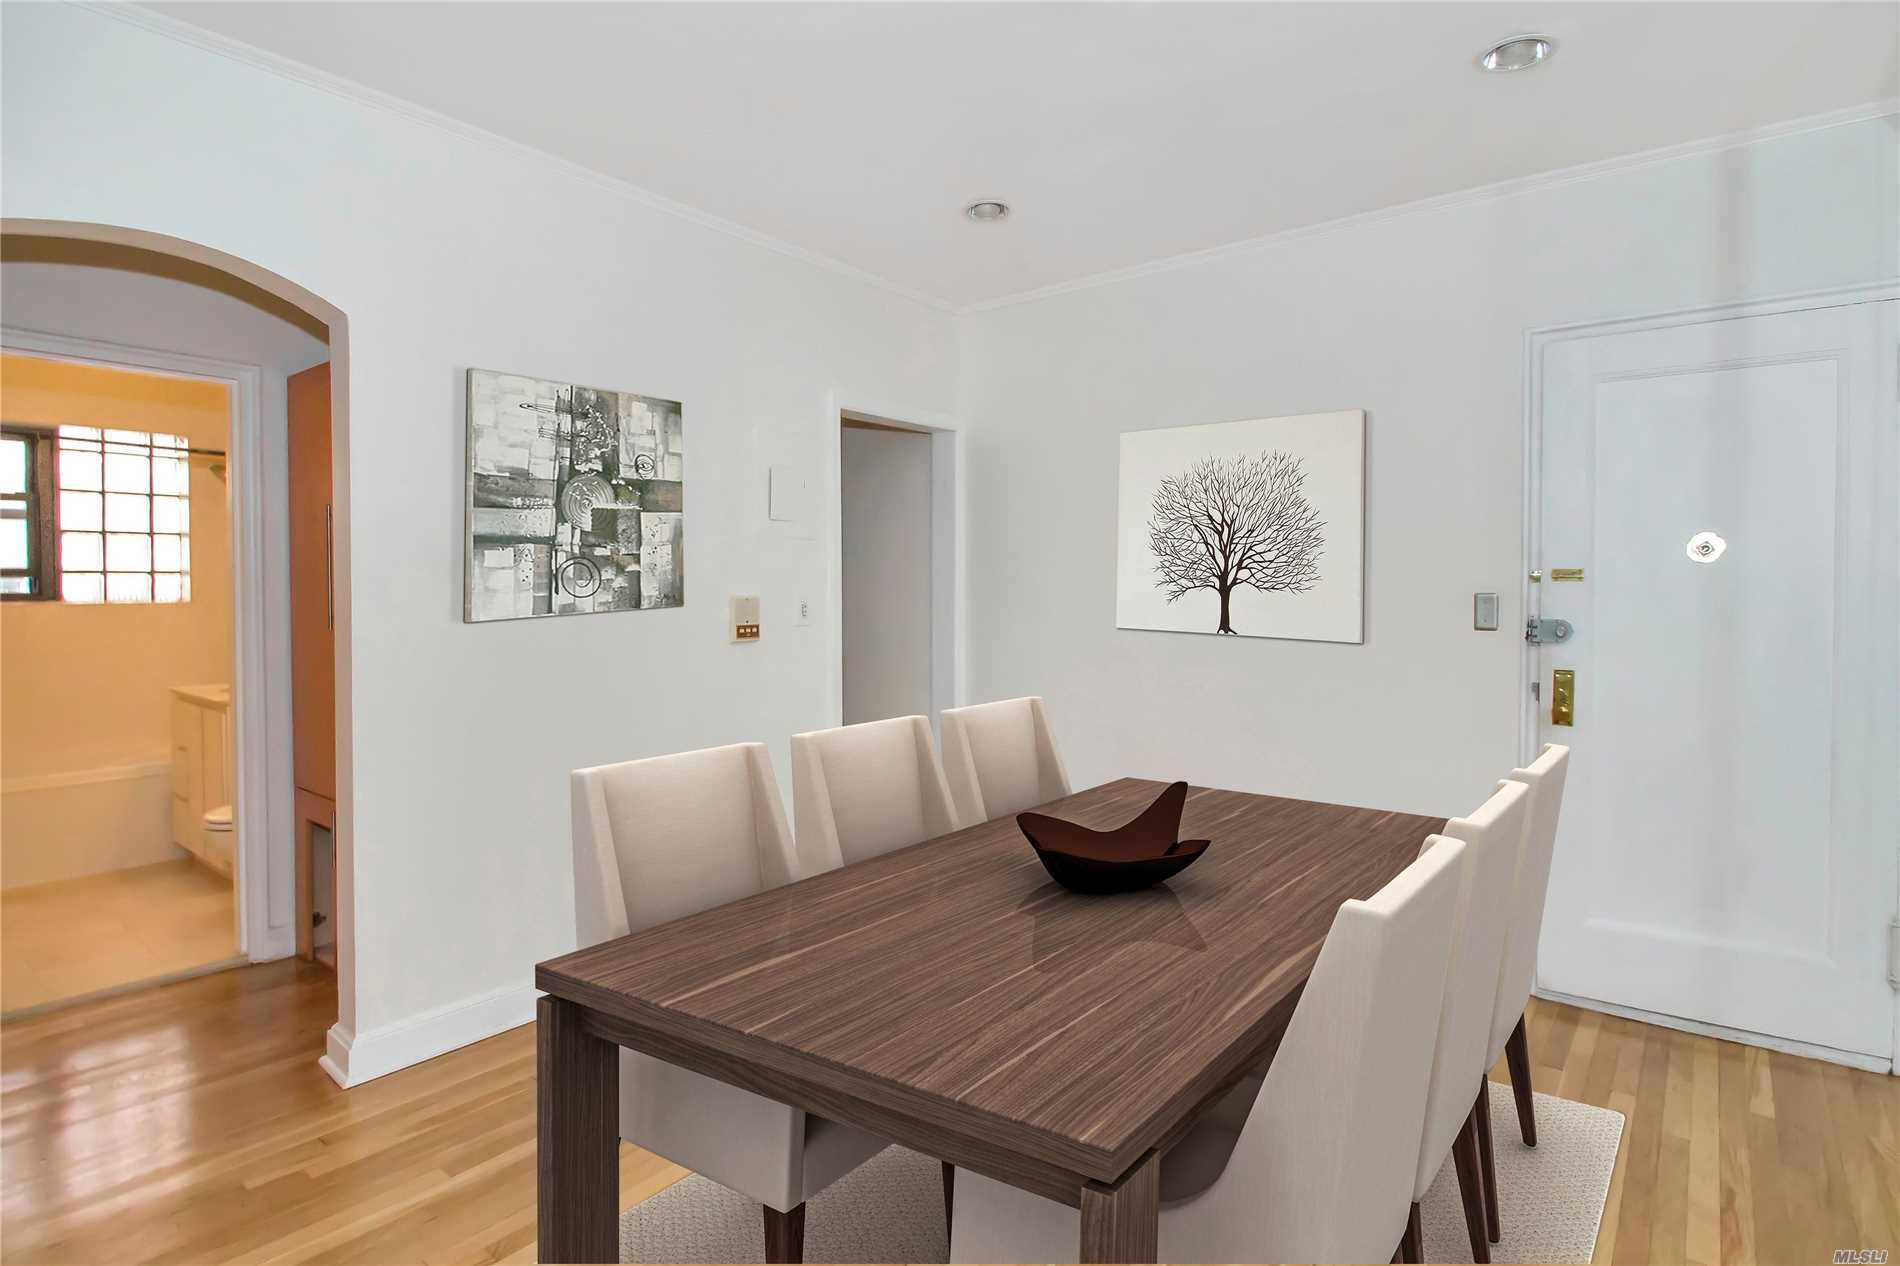 Beautiful One Bedroom Apartment W/Hardwood Floors, Updated Kitchen W/Wood Cabinets & Gas Cooking, Updated Bath, Large Bedroom, Big Closets Throughout, Close To Lirr, Shopping & Municipal Parking.Gn Schools- Saddle Rock Elem, South Middle, And South Hs.